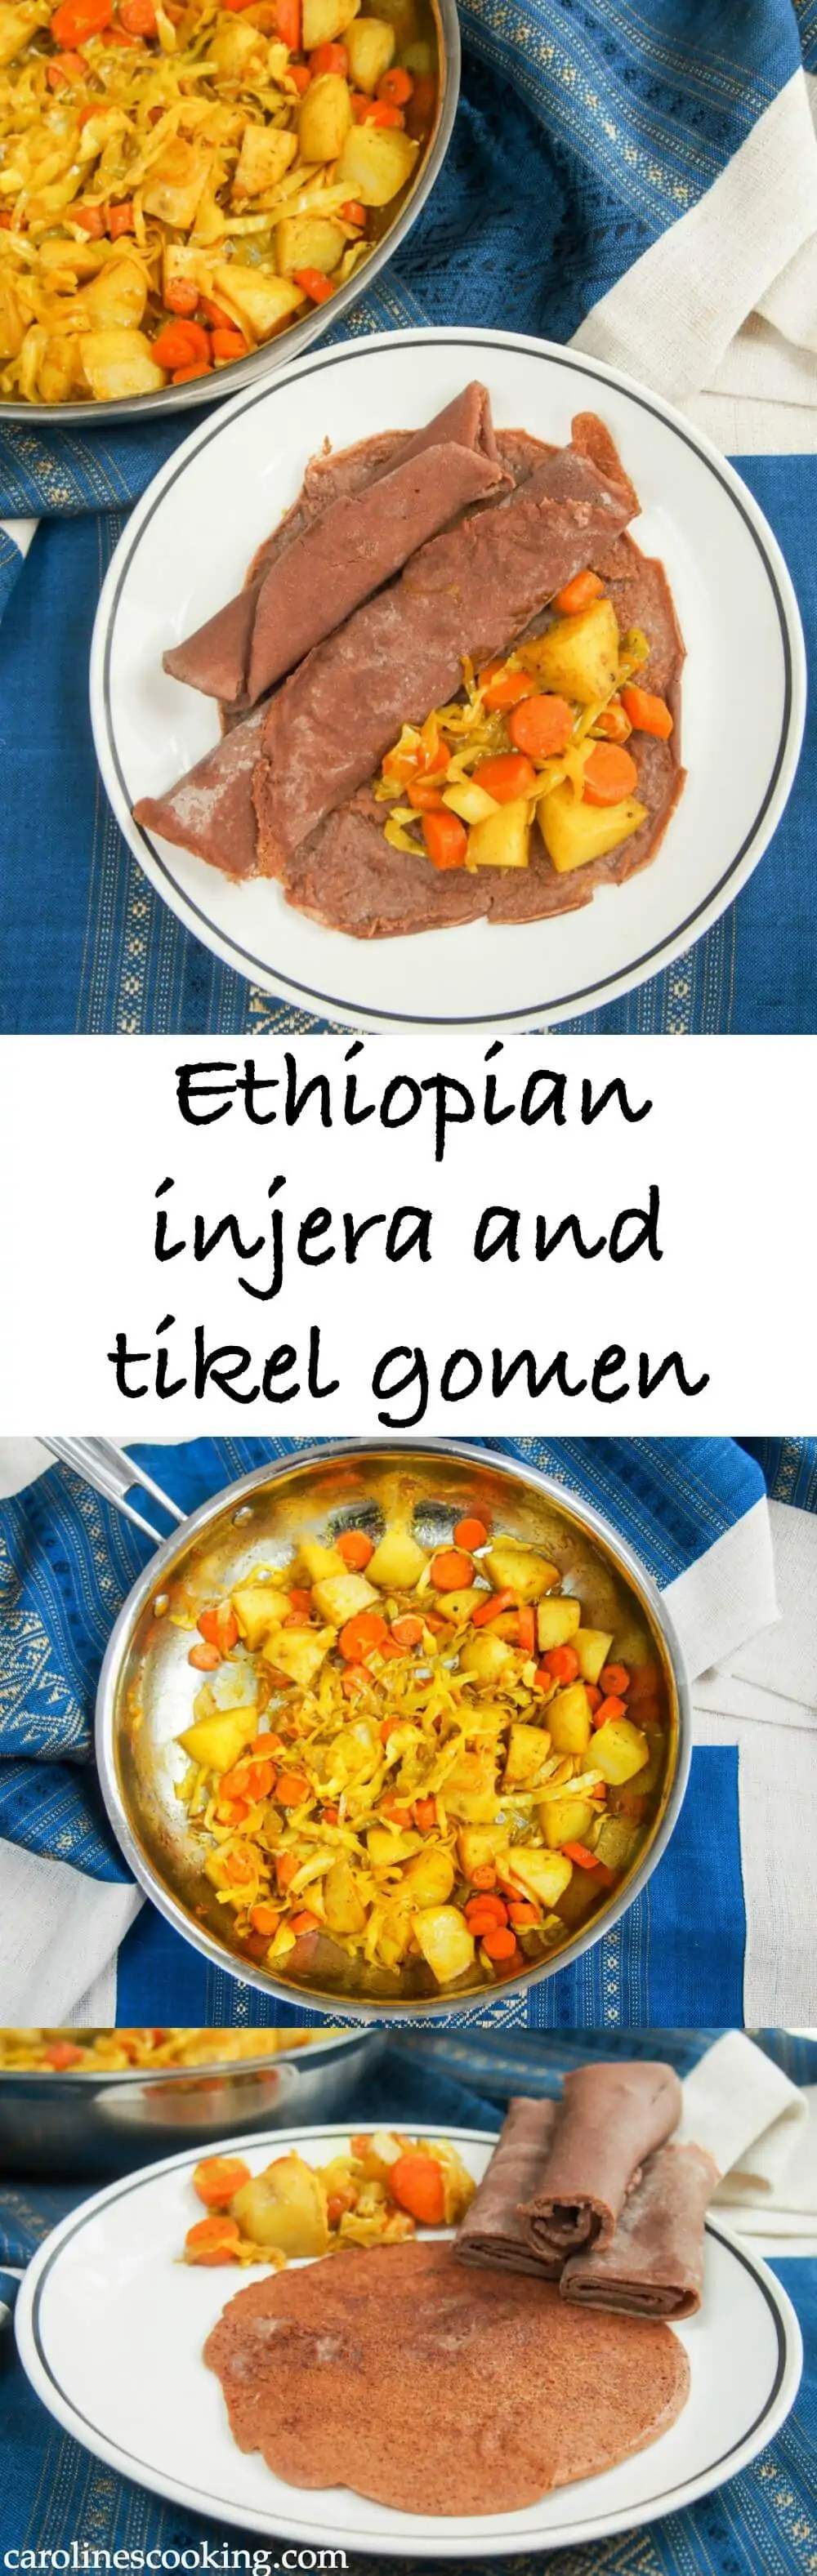 Ethiopian injera and tikel gomen - If you've yet to try Ethiopian food, you really should. Injera (flatbread) is the central to most meals & this tikel gomen (cabbage, carrots & potatoes) is a tasty, easy dish to serve with it. Gluten free and vegan